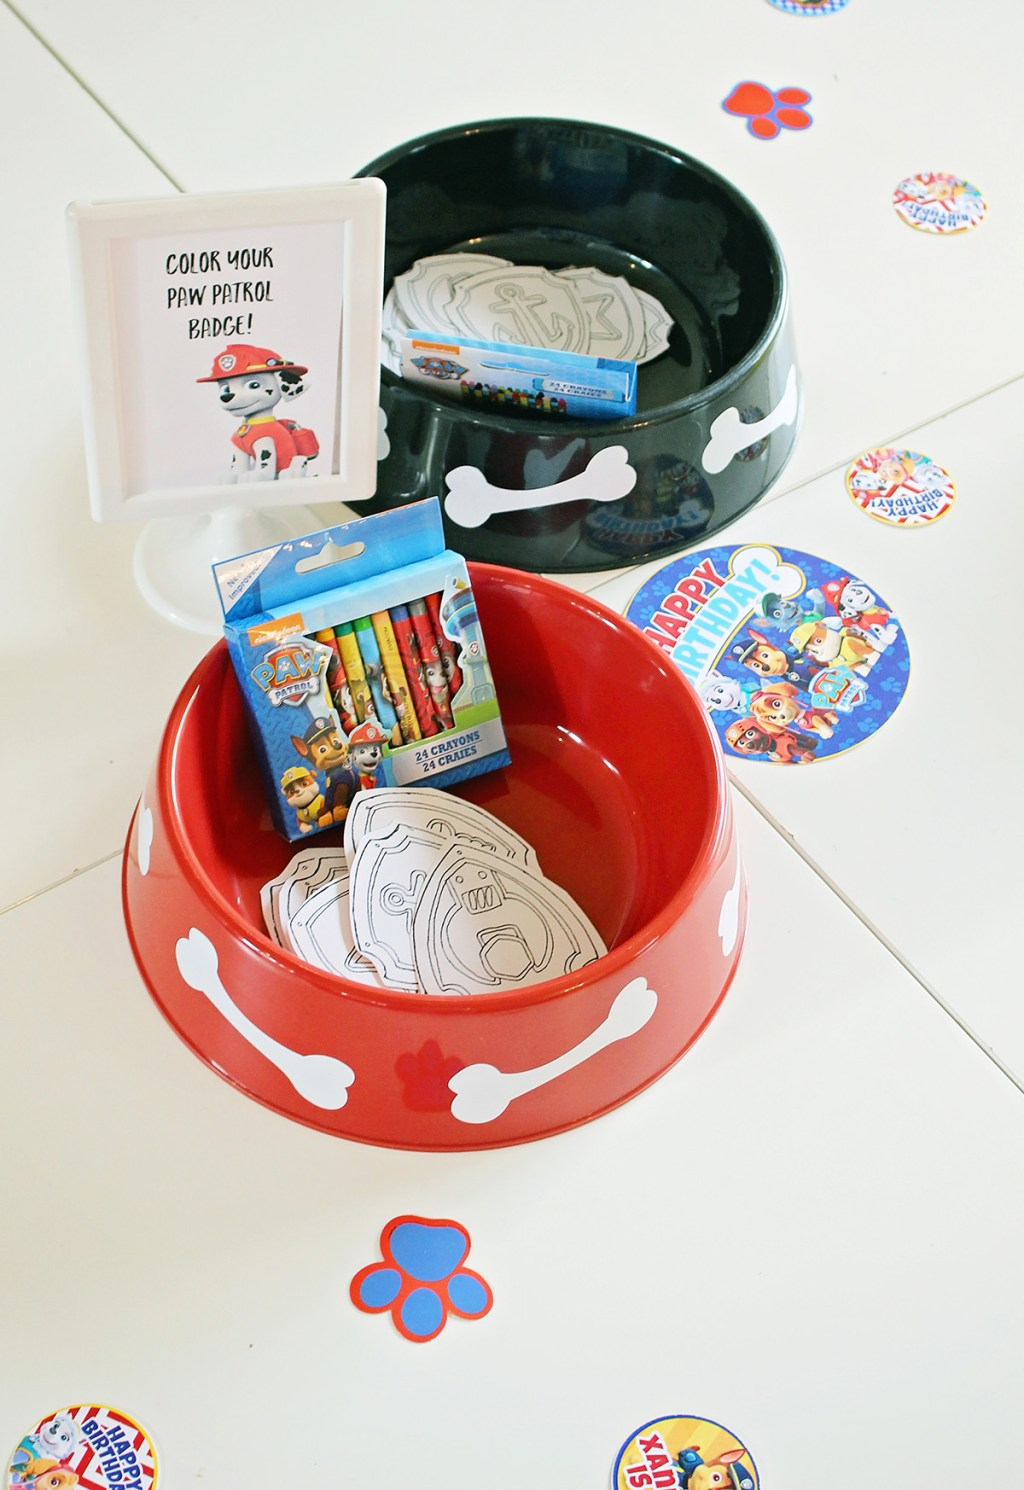 Paw Patrol Party make your own badge station.